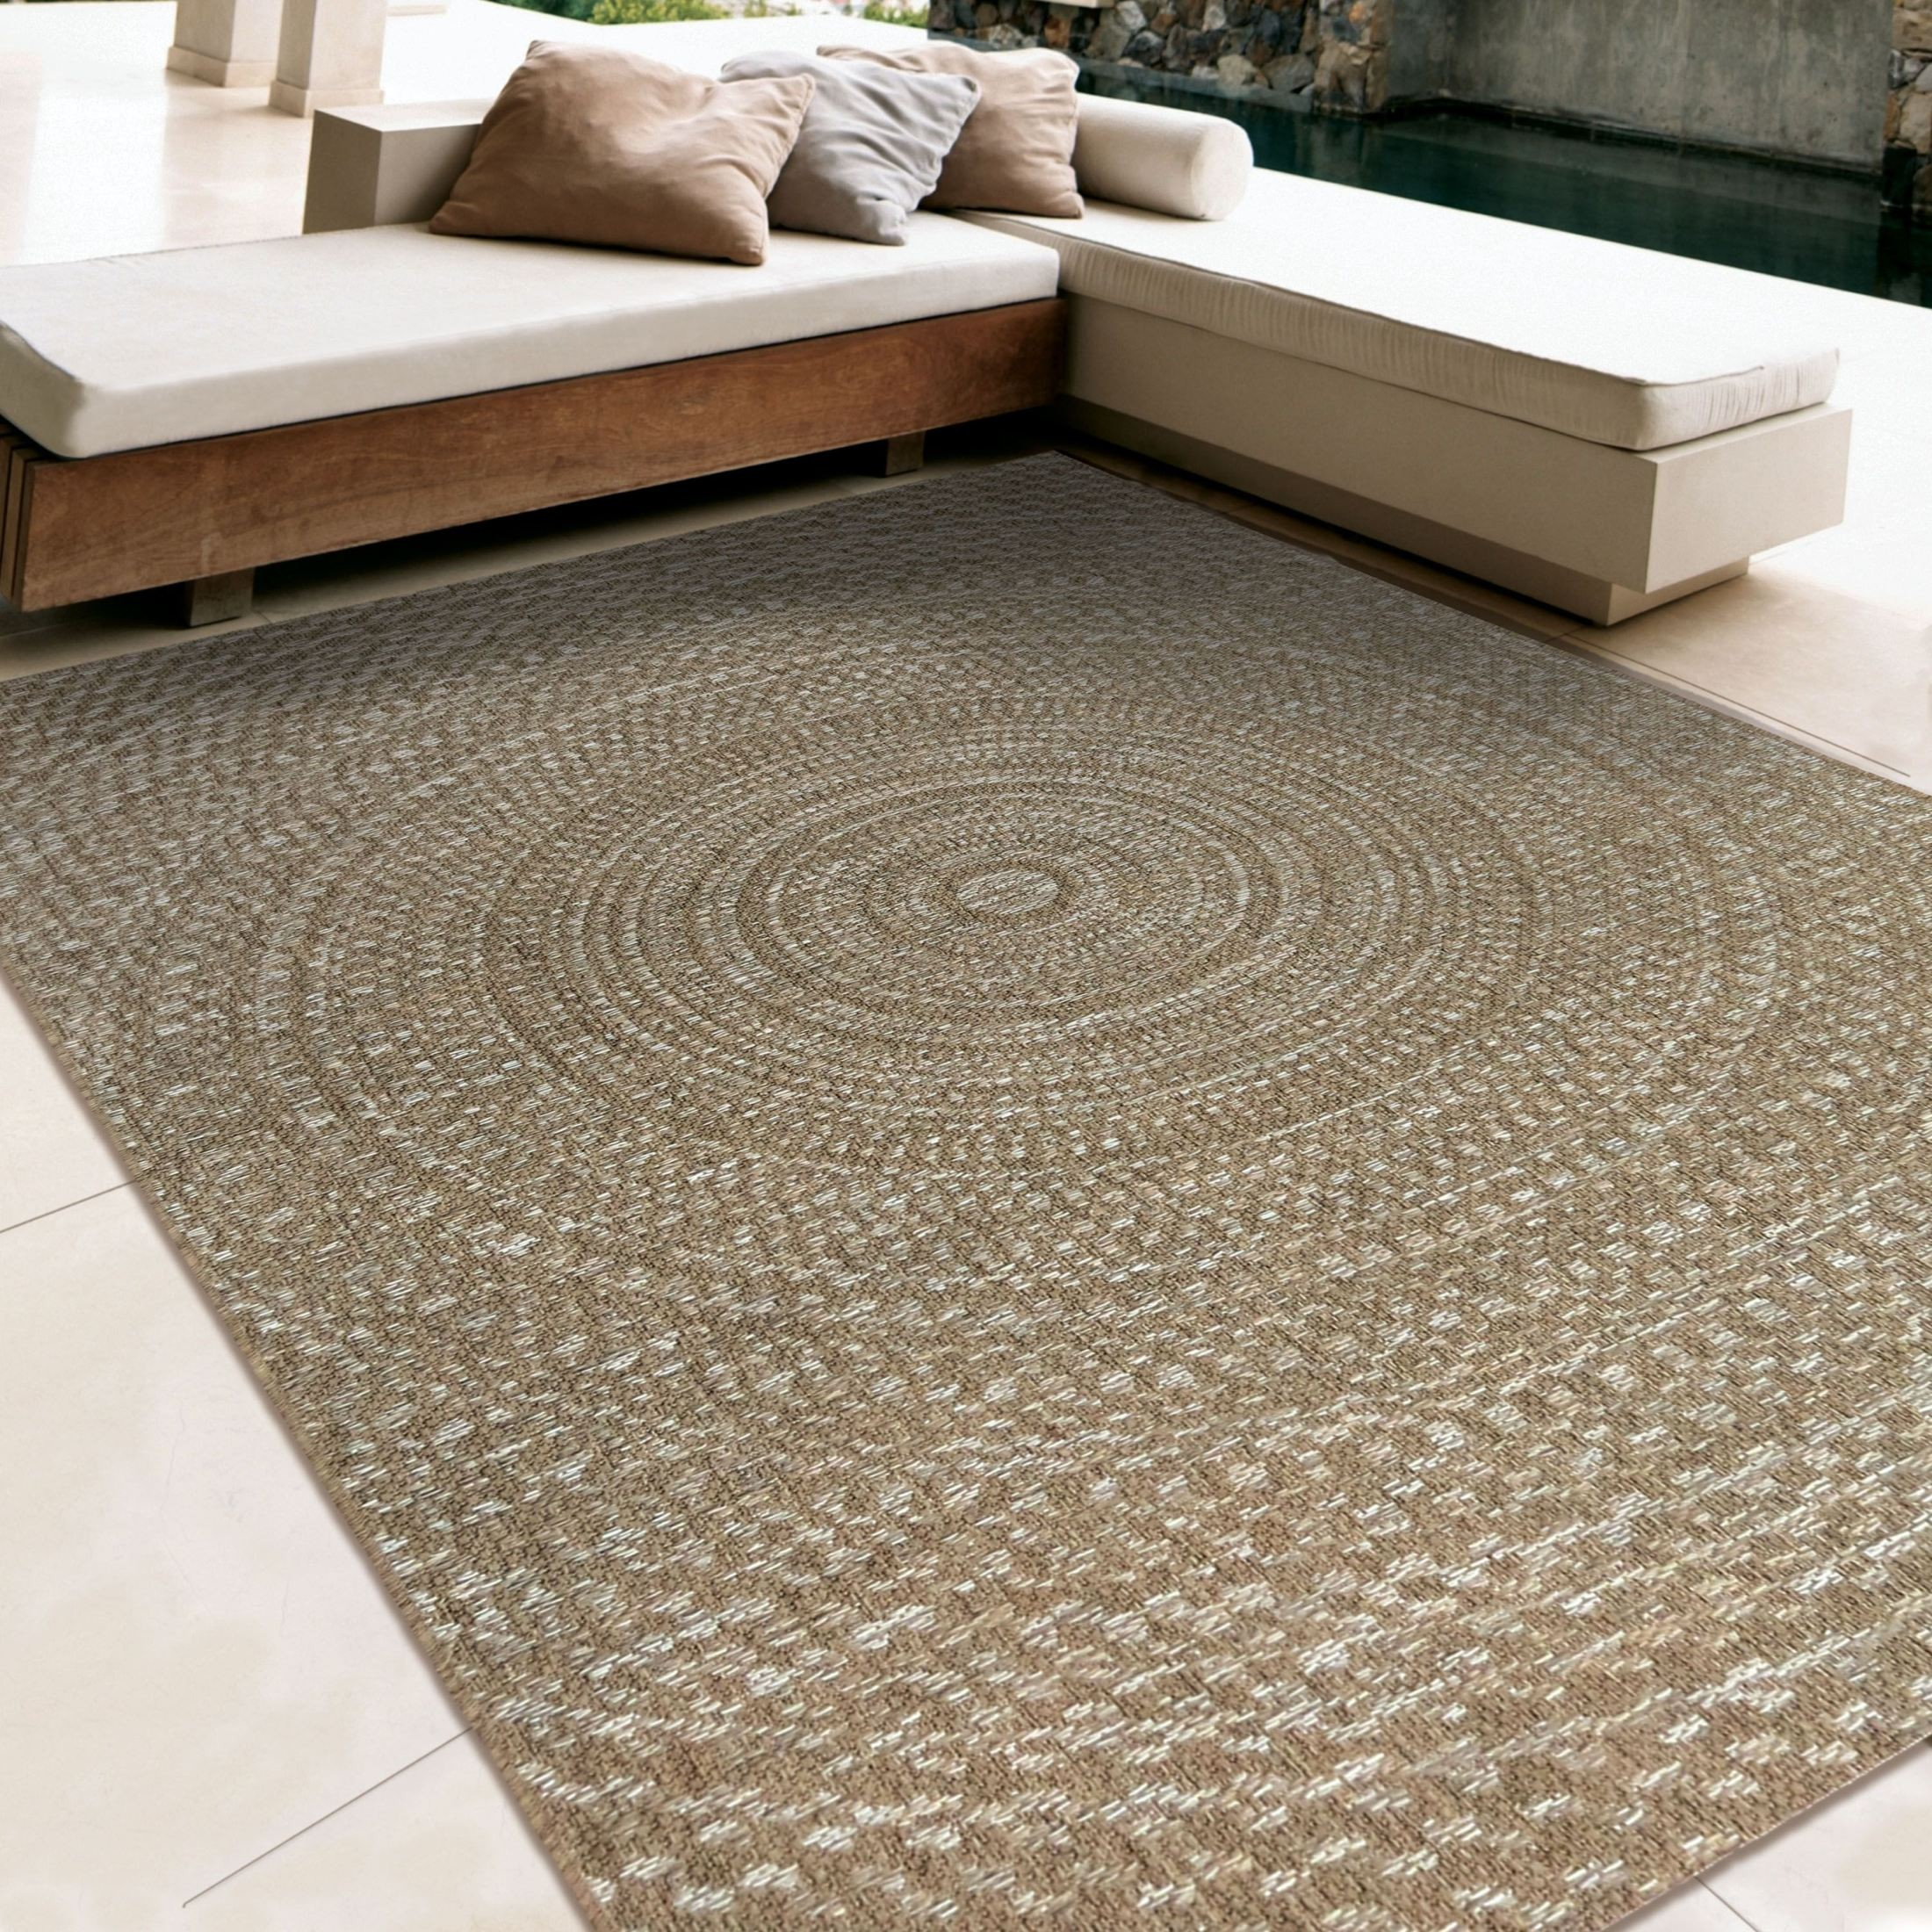 Orian rugs indoor outdoor circles cerulean gray brown for Grey and tan rug